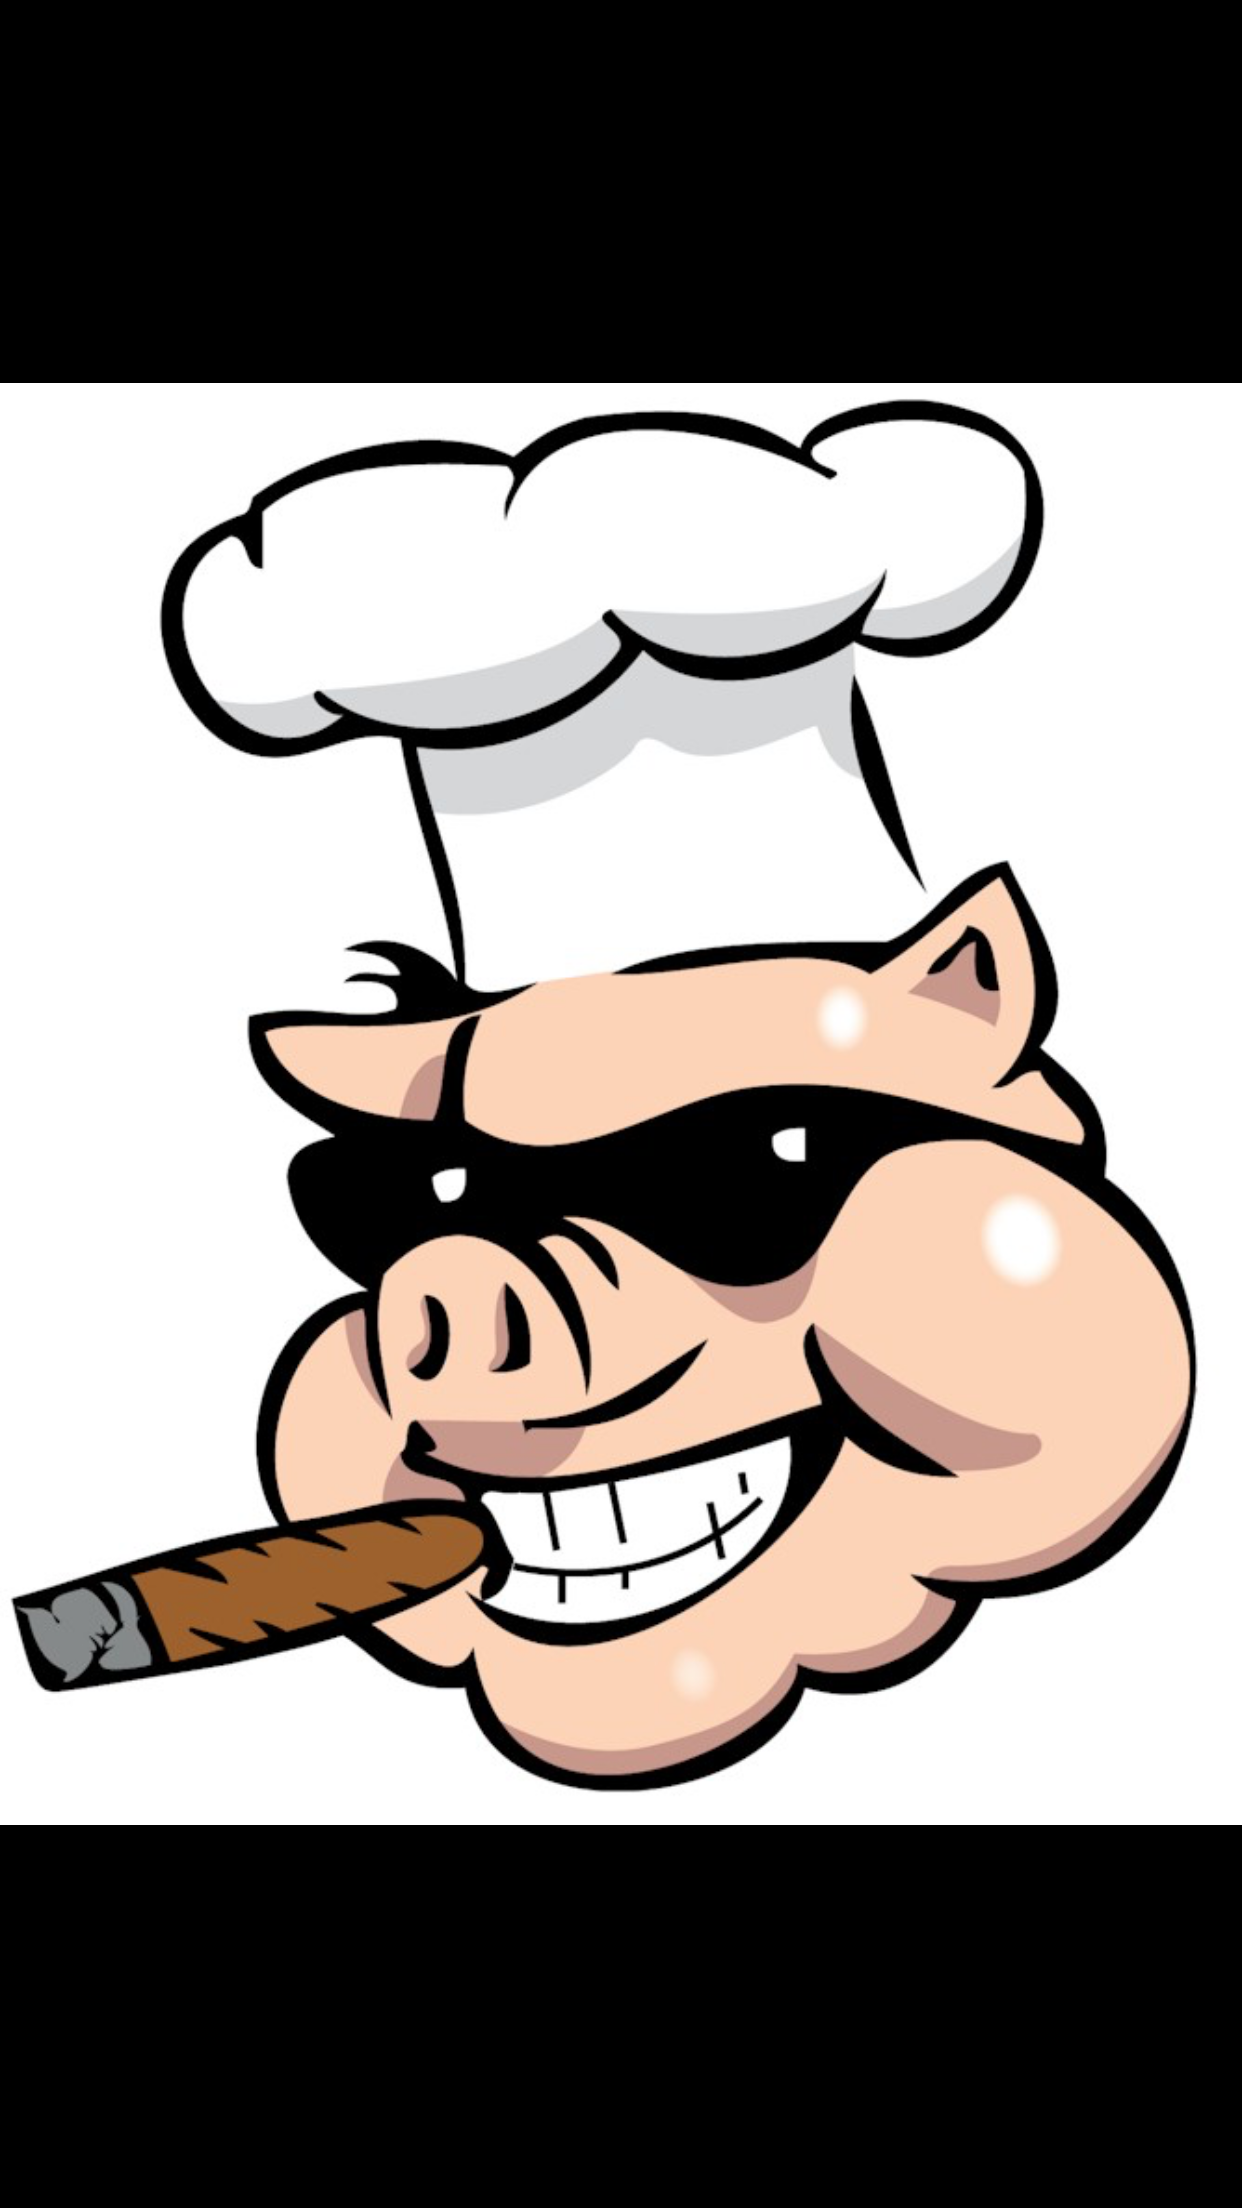 Smoking meats clipart banner library library Pin by Coonassmom on *KK* Guys   Smoking pig, Grill logo ... banner library library